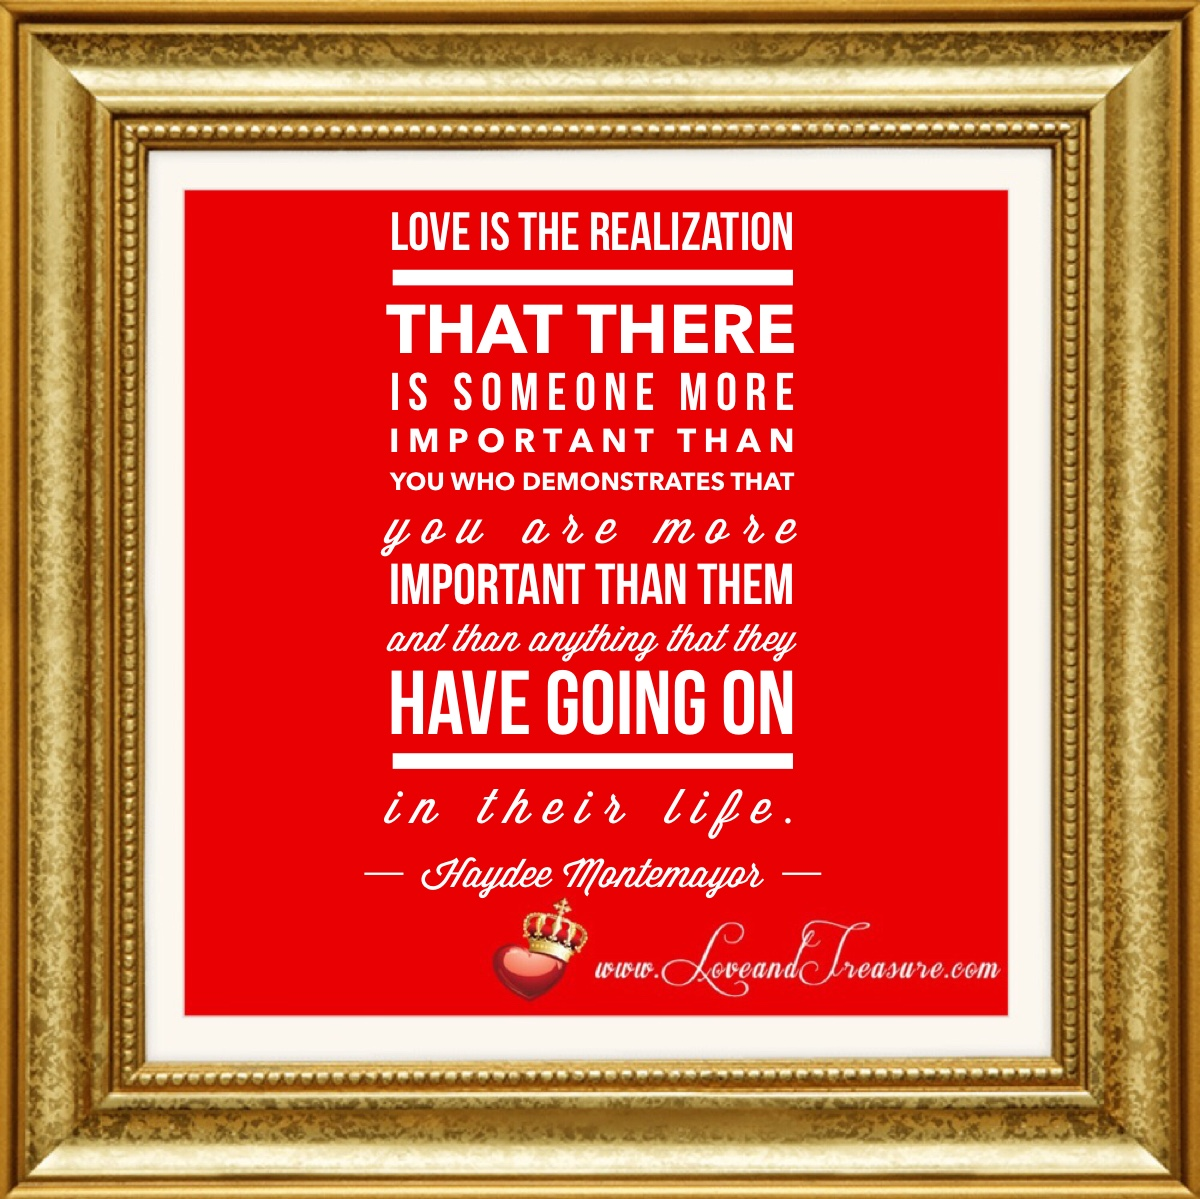 "Love is the realization that there is someone more important than you who demonstrates that you are more important than them and than anything that they have going on in their life."" -Haydee Montemayor, www.loveandtreasure.com, love and treasure"